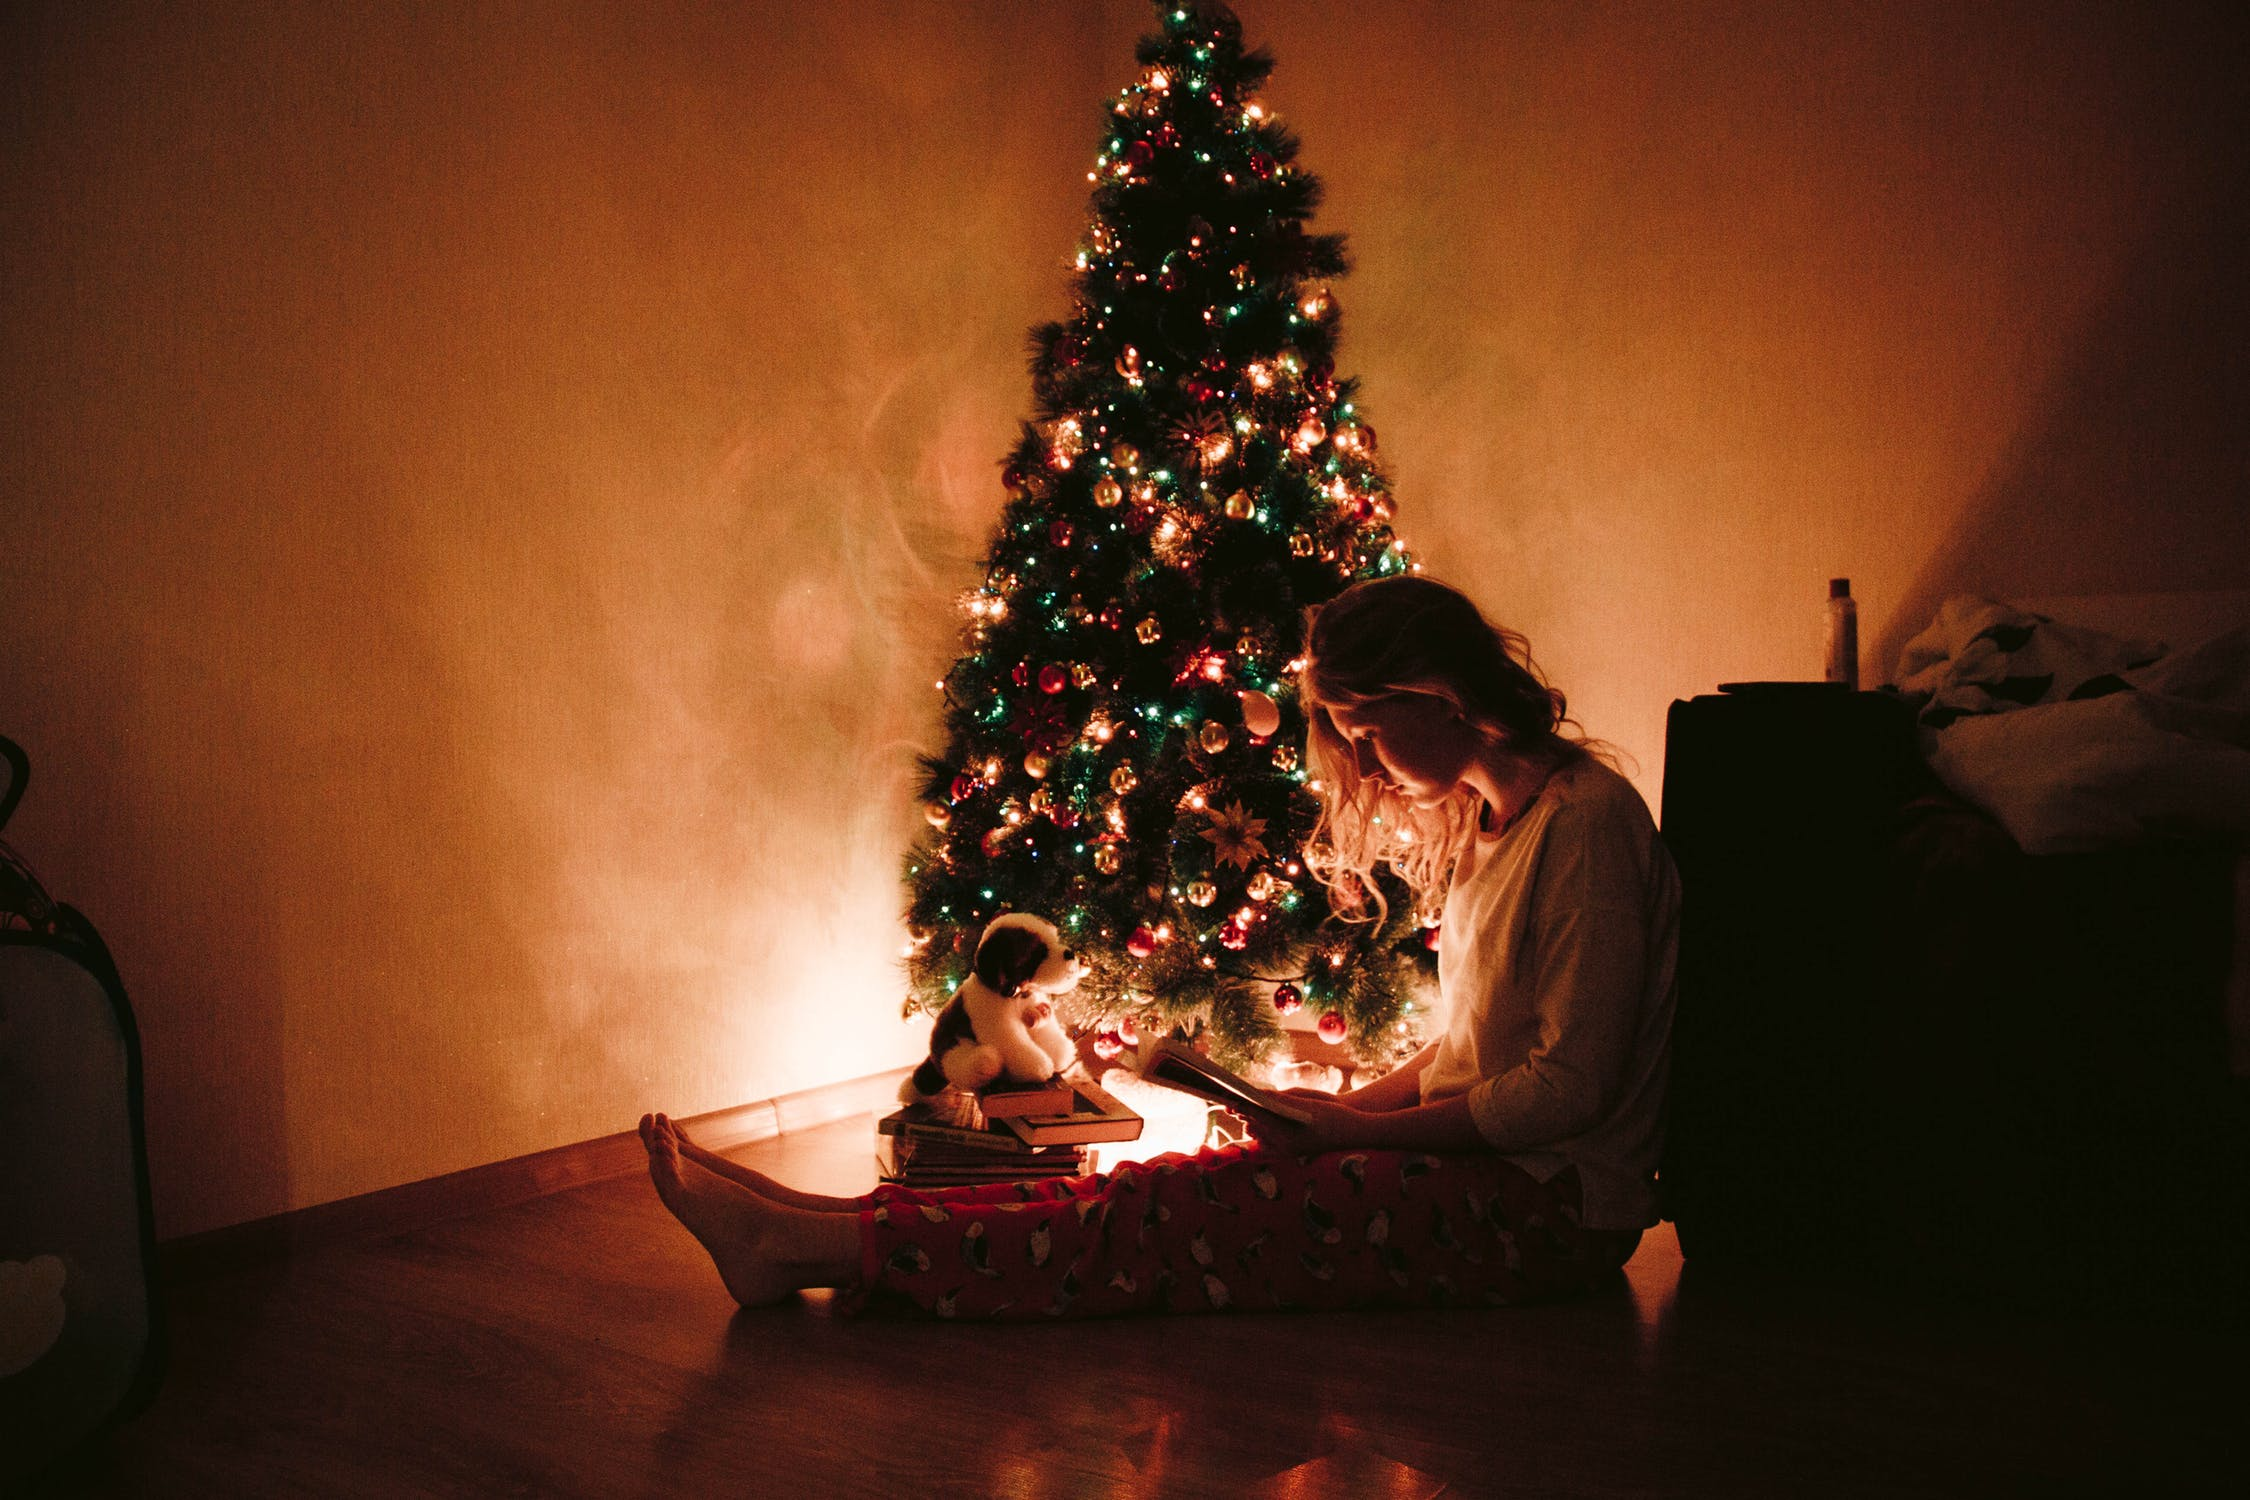 5 Excellent Ways to Calm Your Nerves This Holiday Season